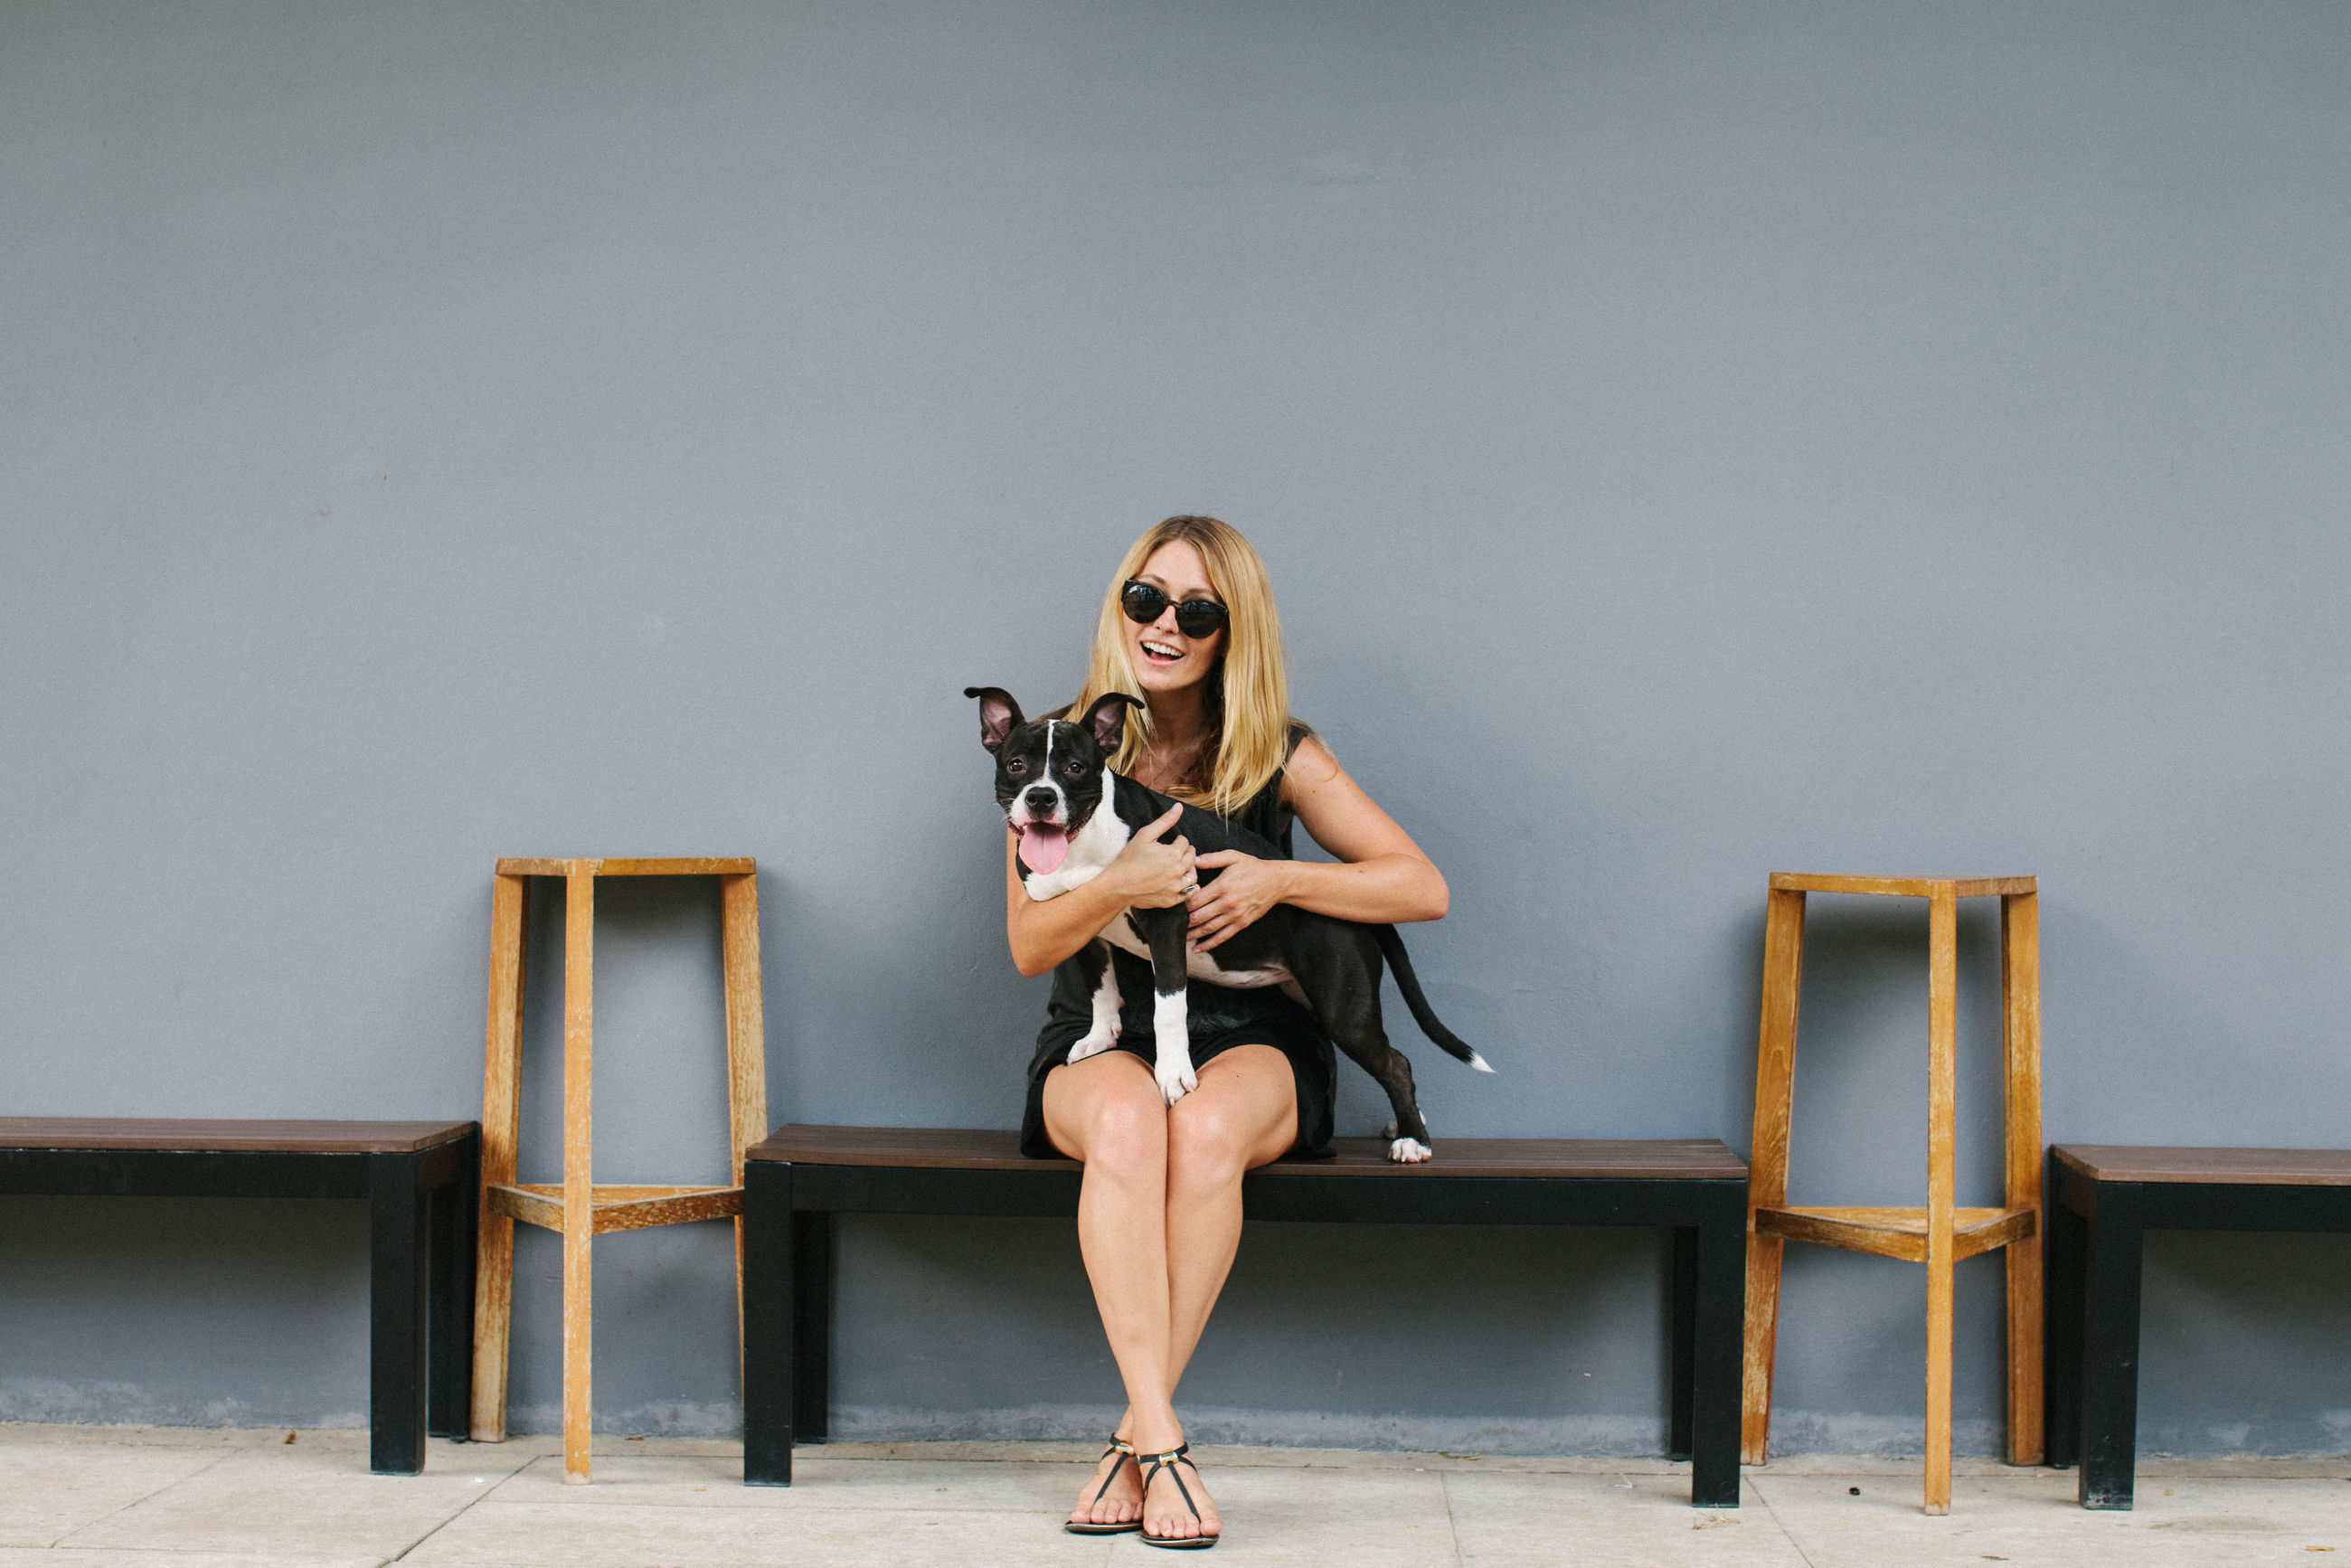 Young woman sitting on bench with her dog